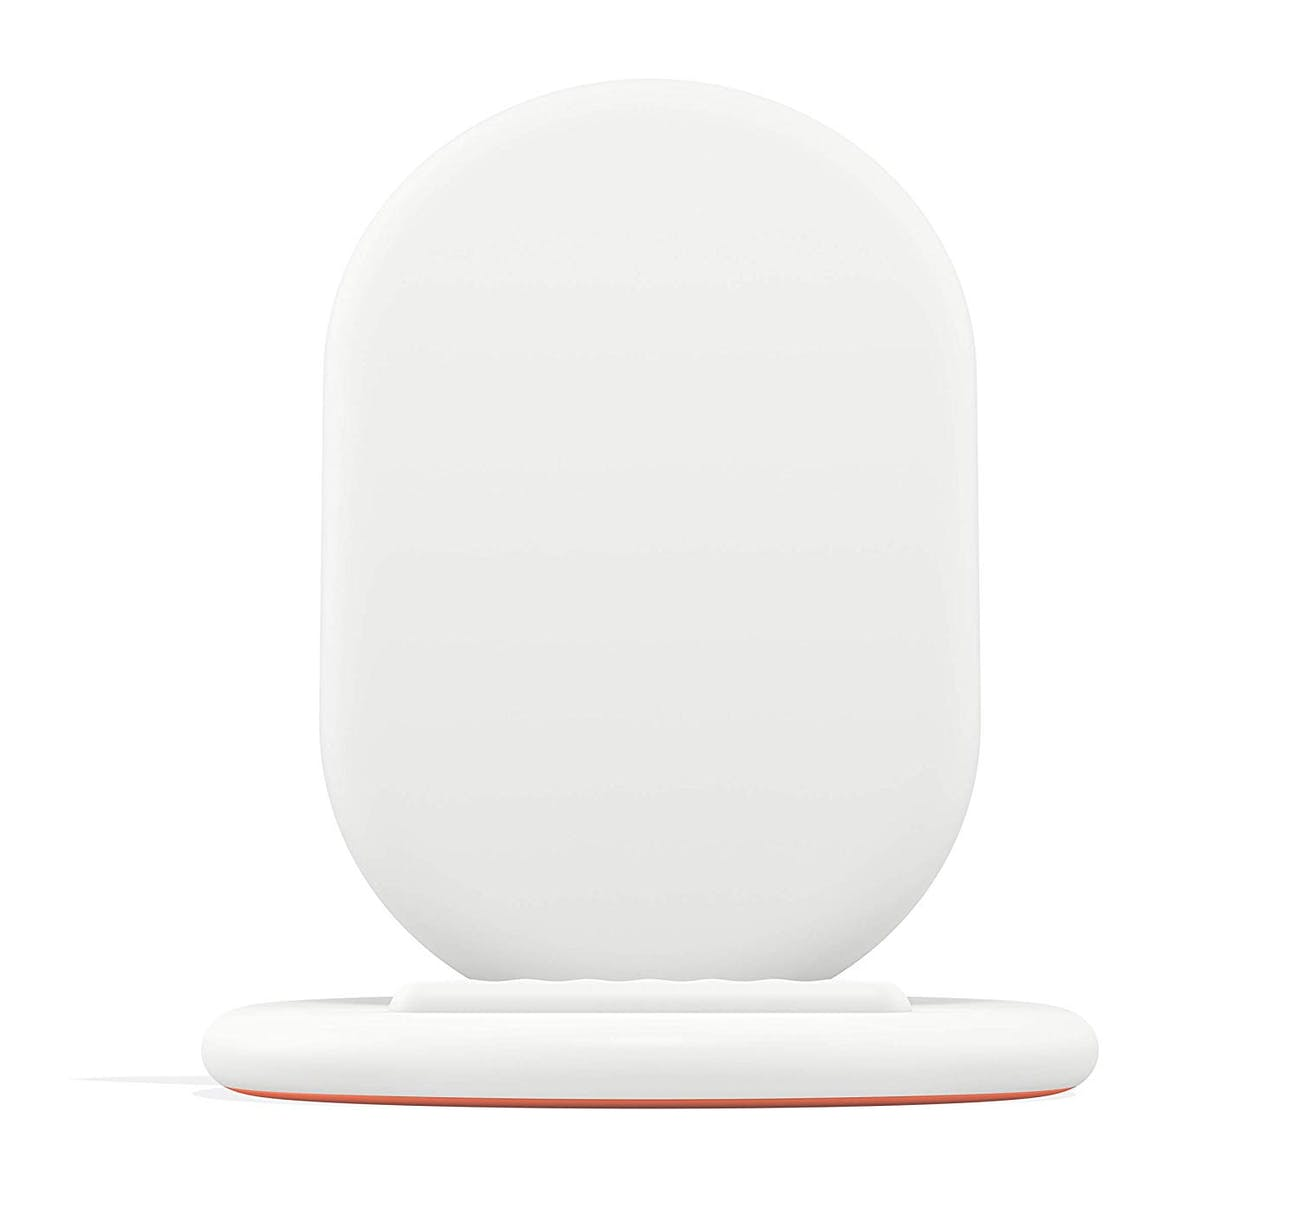 Google Pixel Stand Wireless Charger for Pixel 3, Pixel 3XL - White